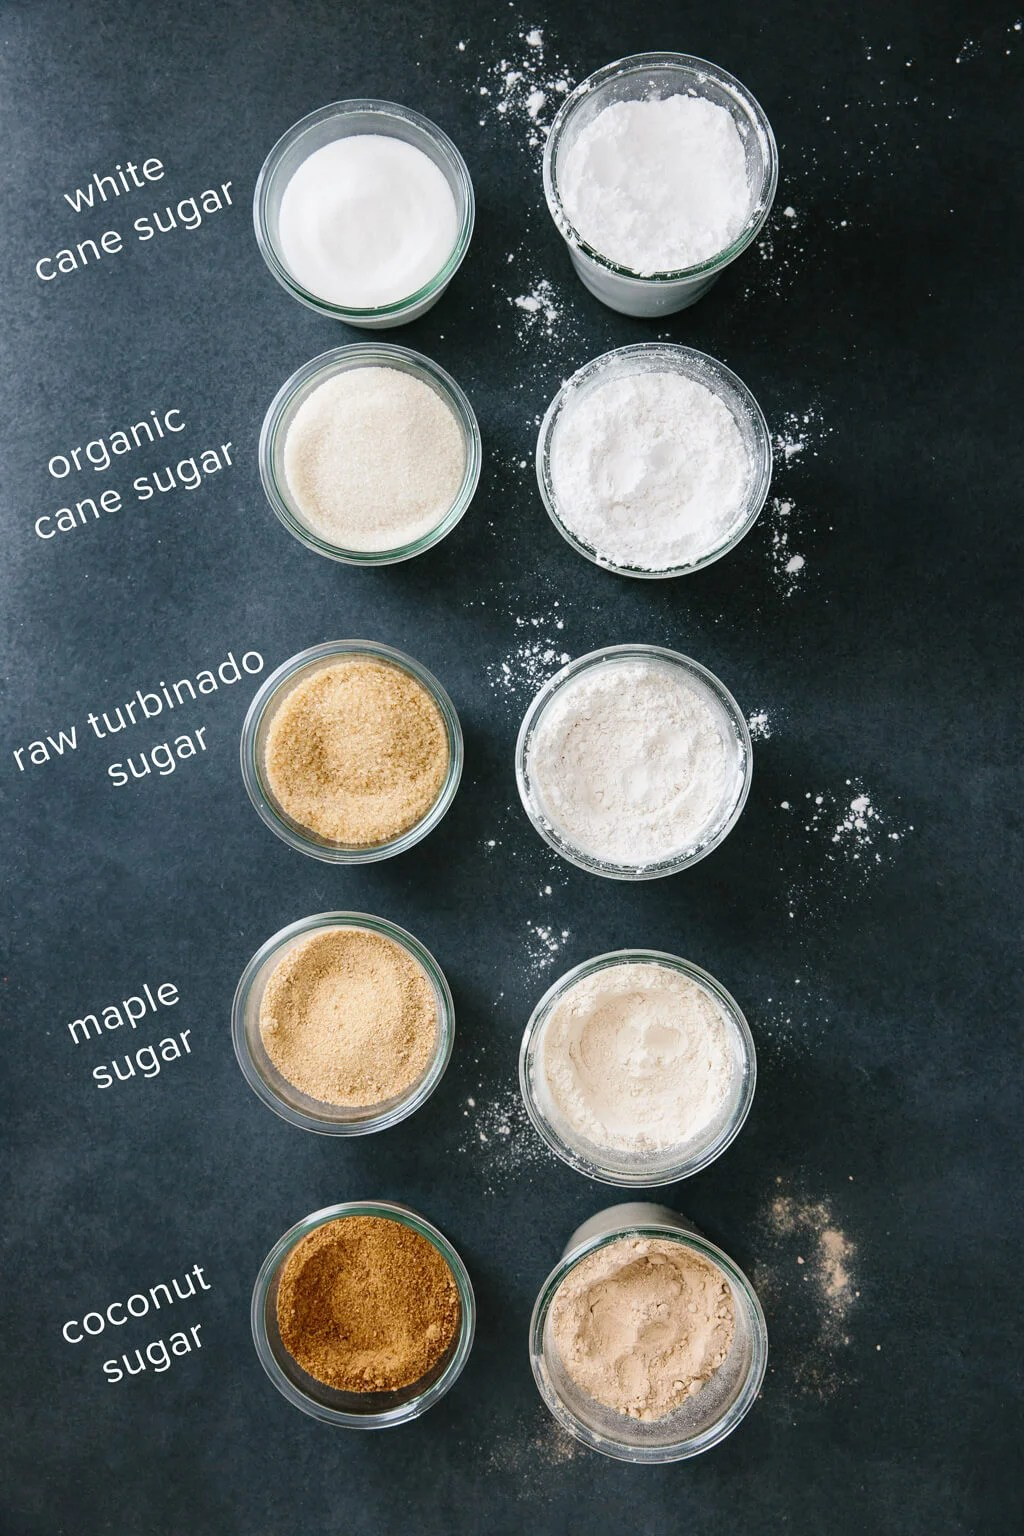 Different types of sugar next to their powdered sugar forms.